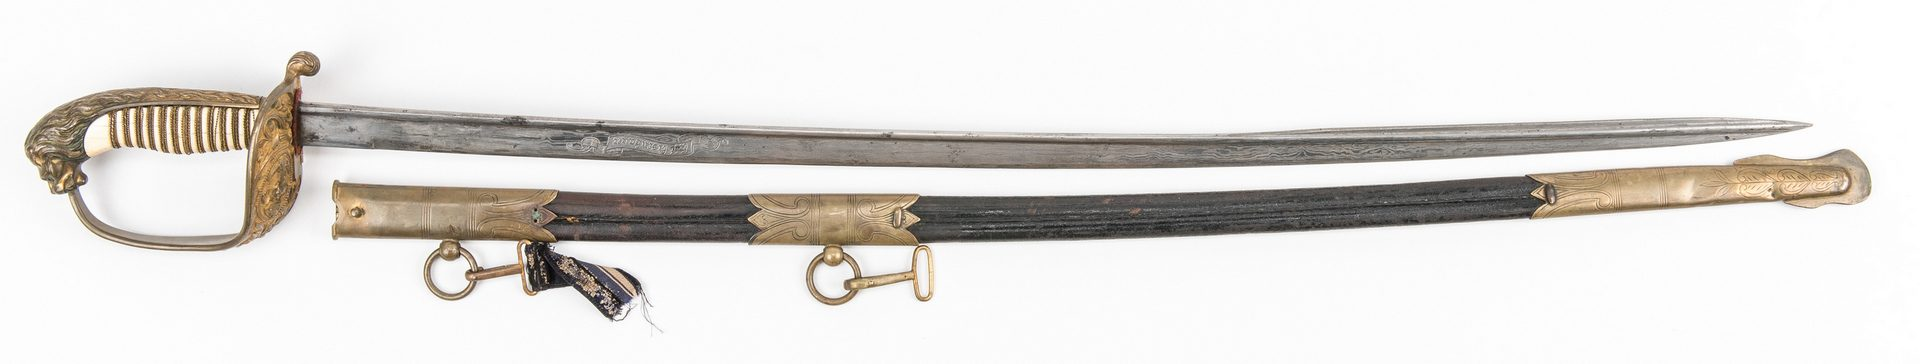 Lot 791: German Eisenhauer Imperial Naval Sword with Leather Scabbard